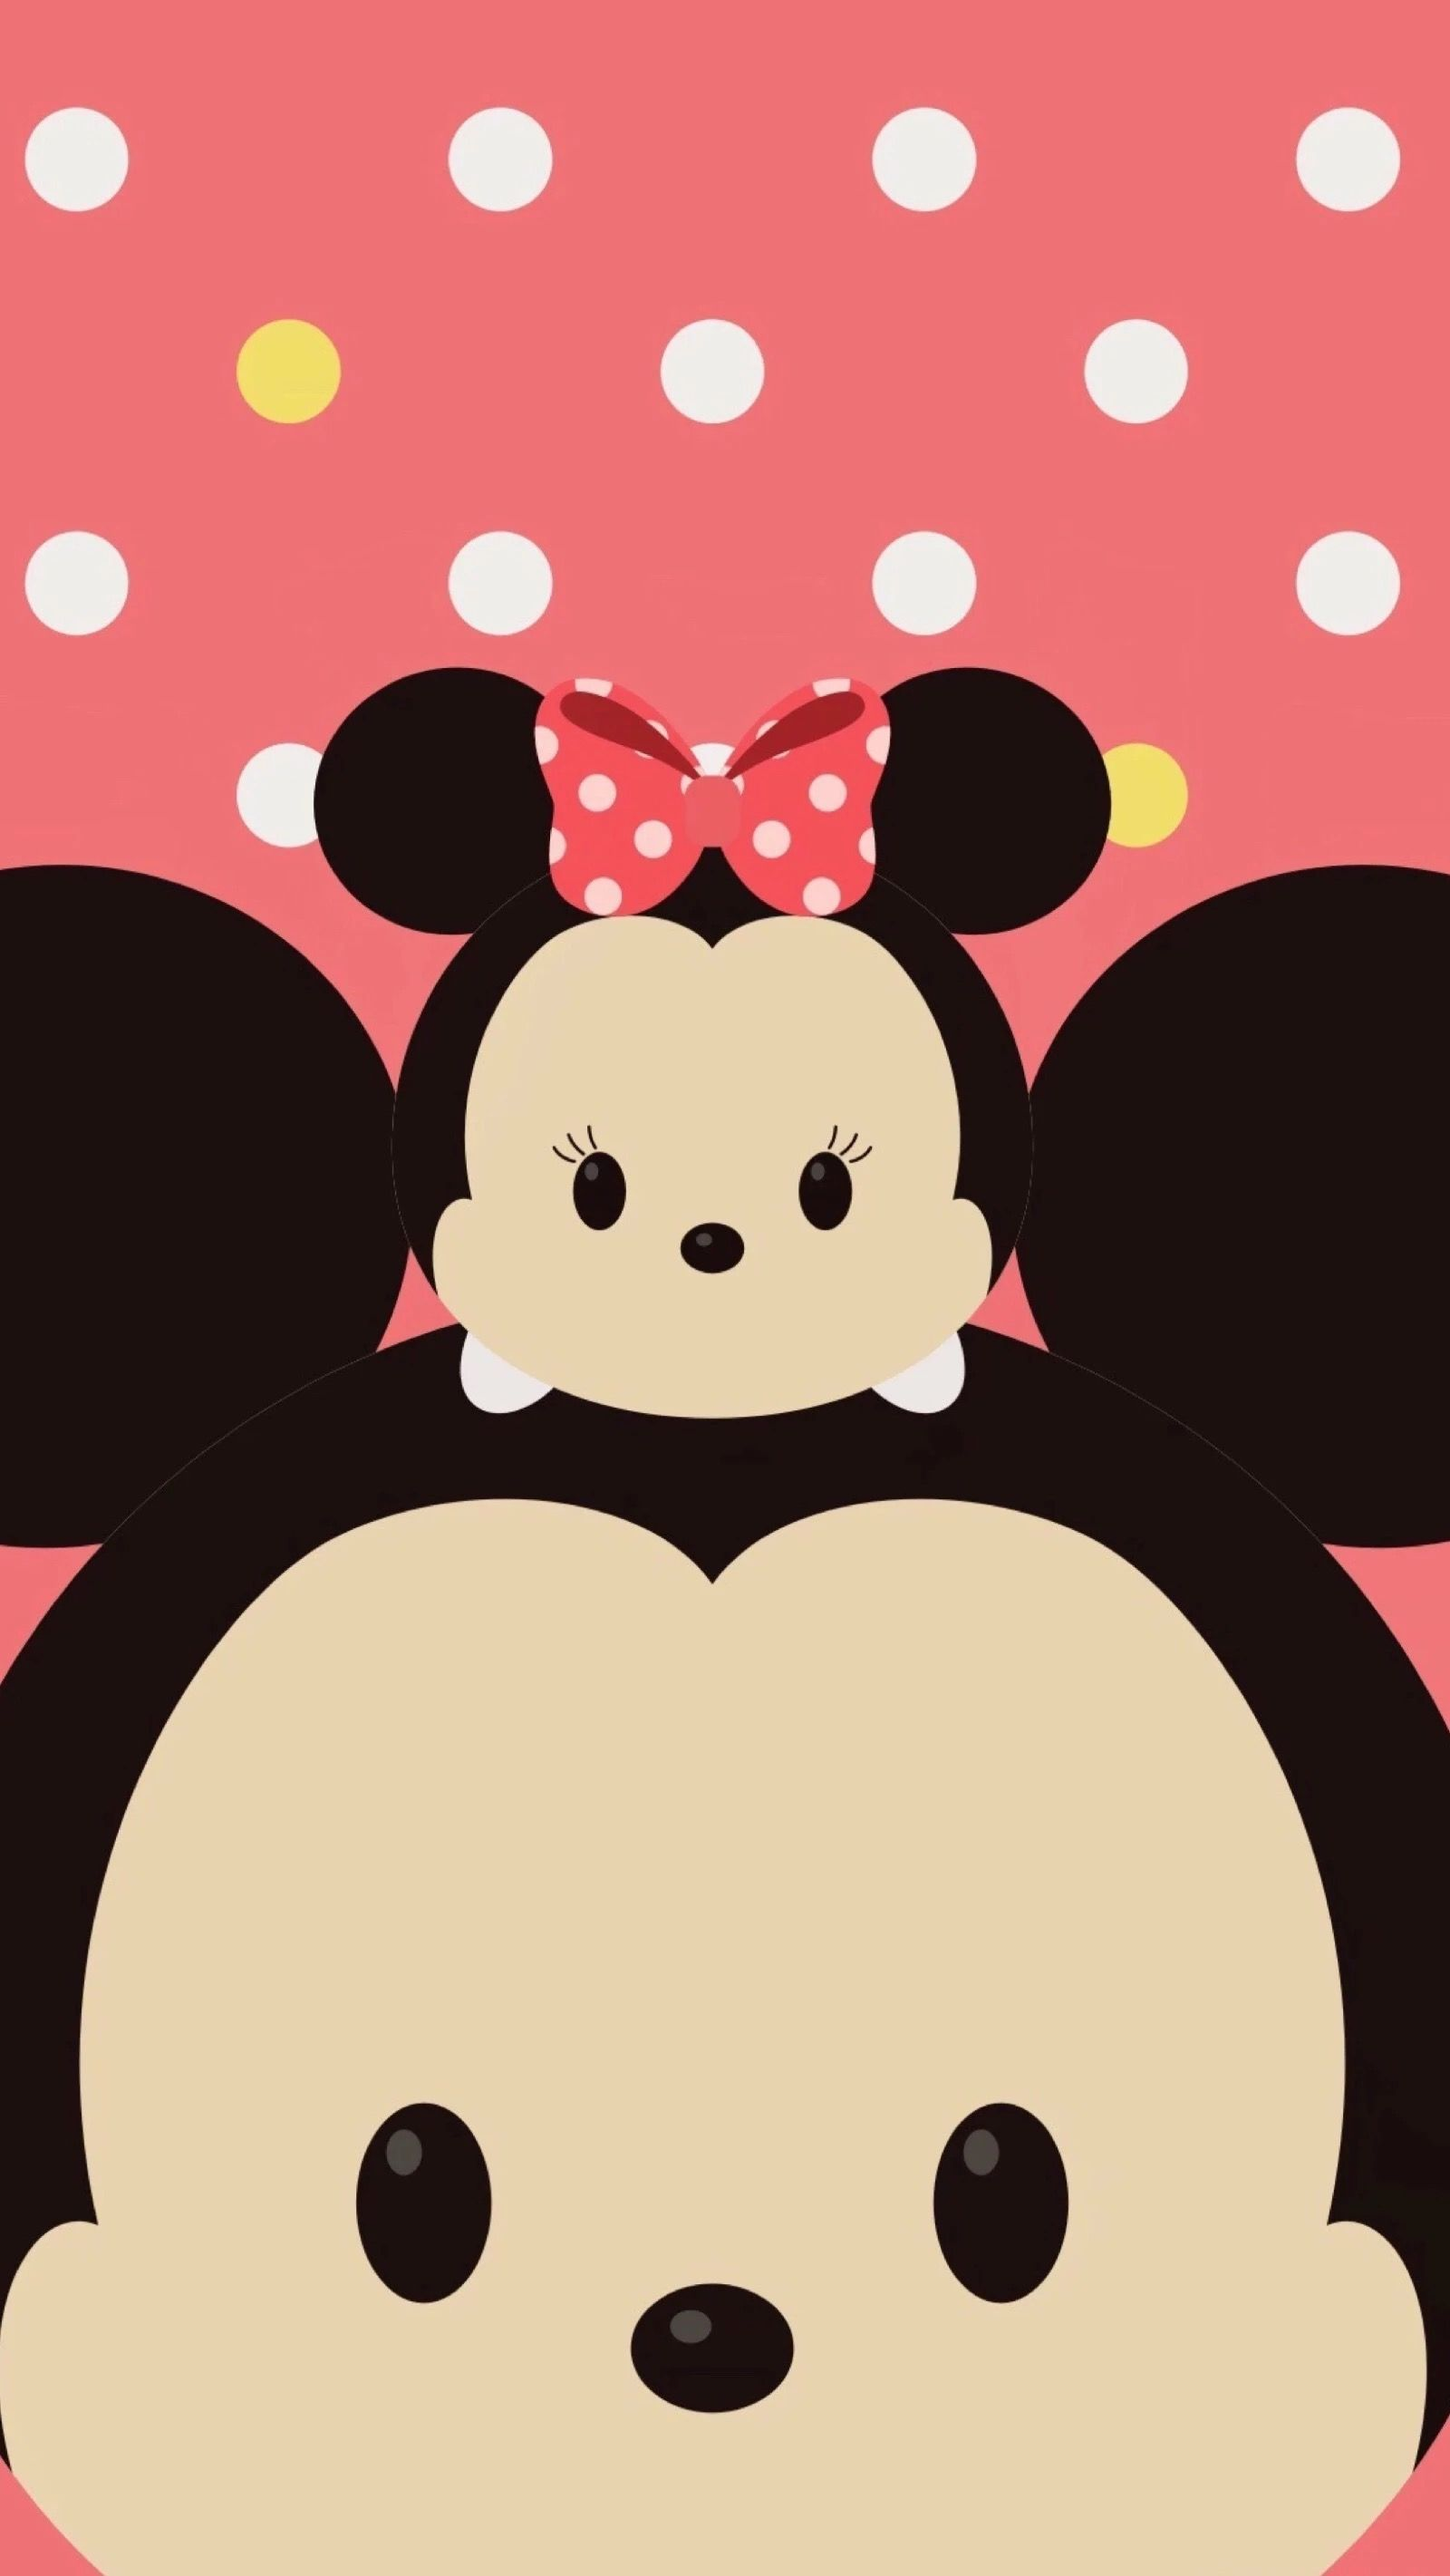 Do You Want A Free Iphone 11 Pro Max Click The Link To Get It Now For The Cost 0 In 2020 Cute Disney Wallpaper Tsum Tsum Wallpaper Mickey Mouse Wallpaper